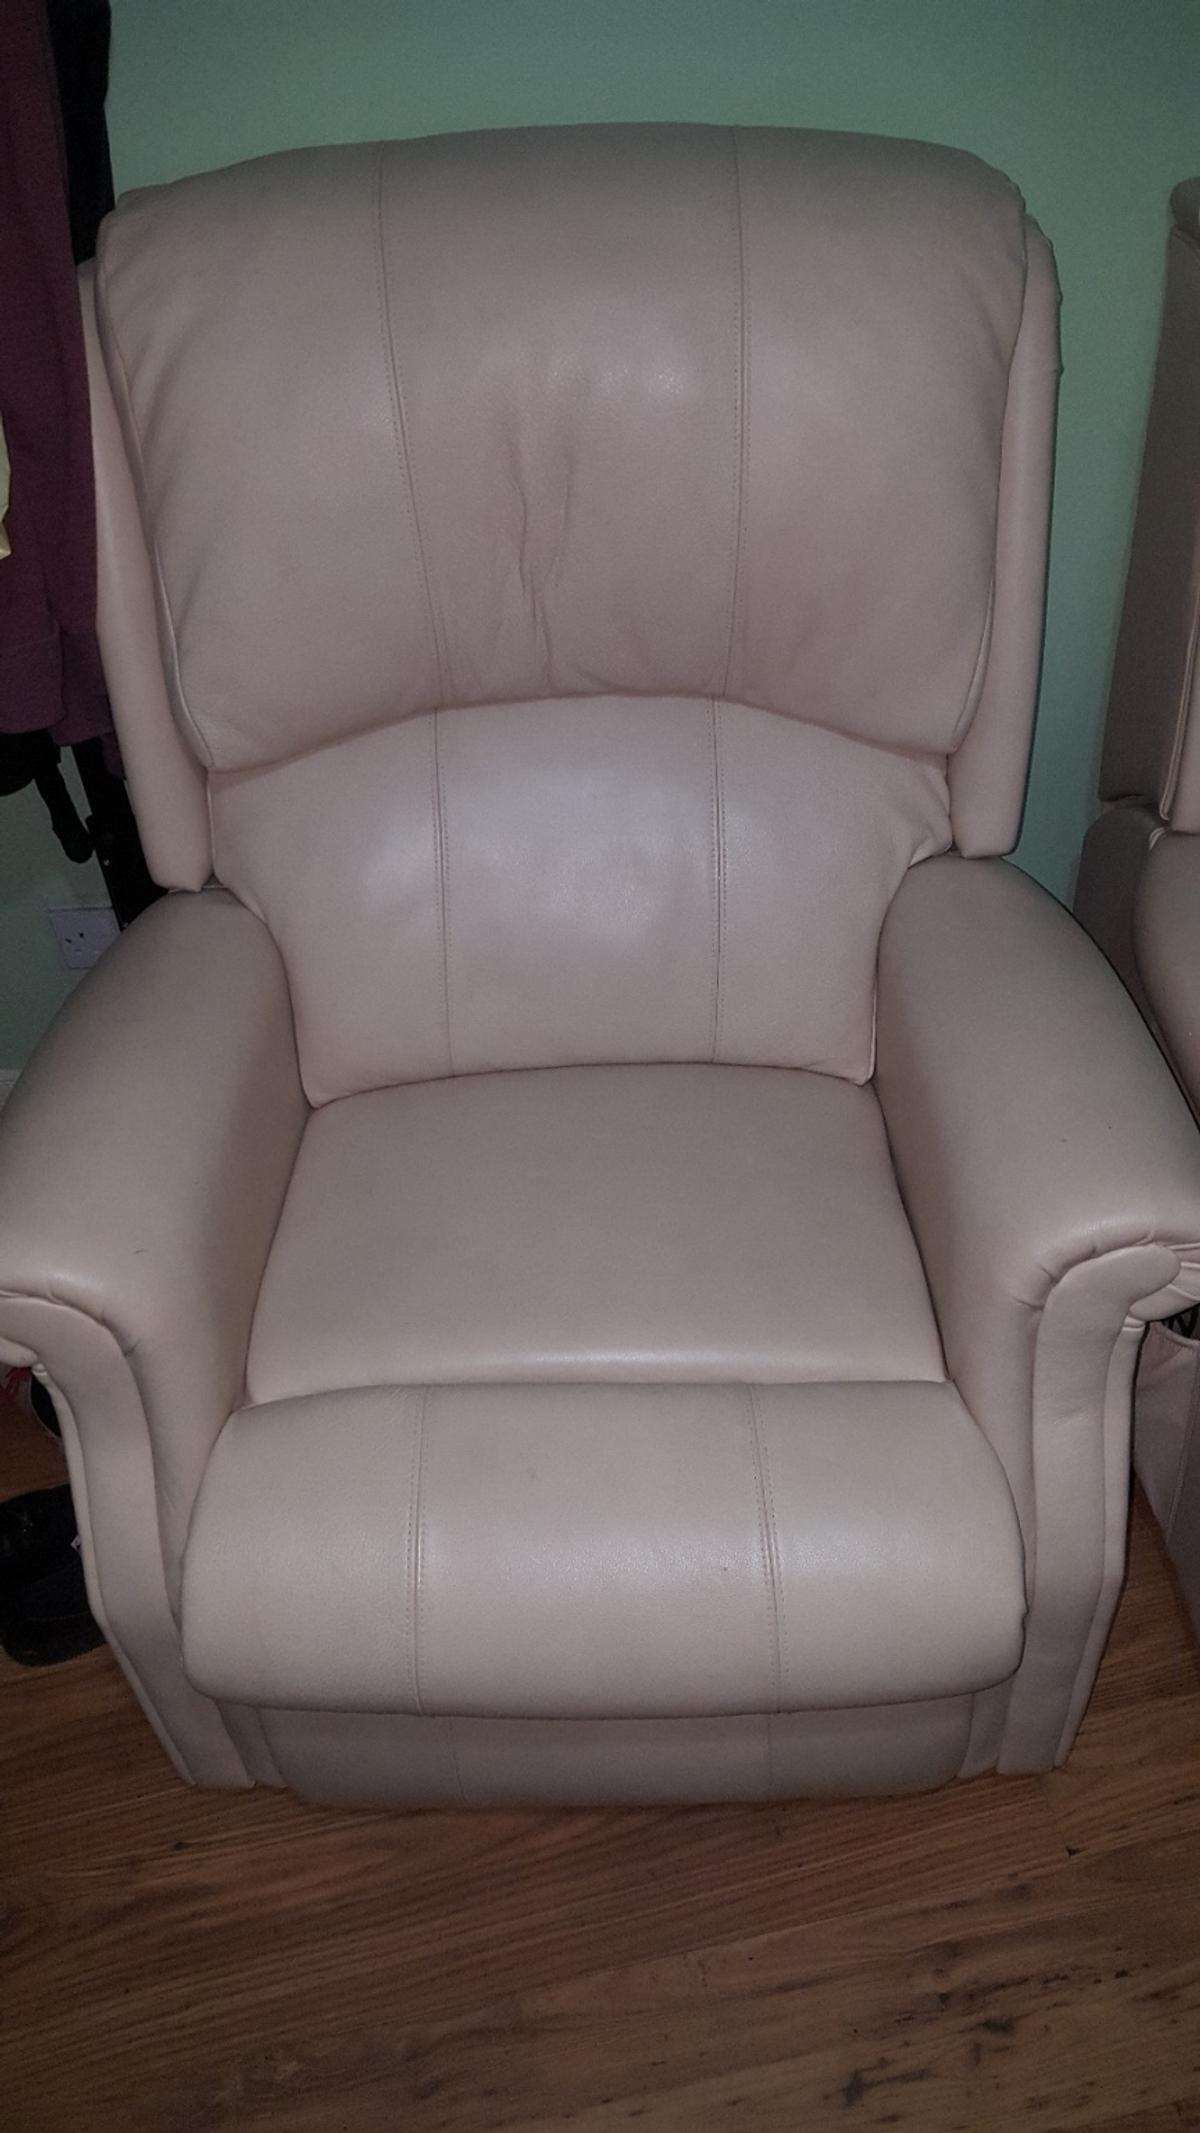 Swell Designer Brand Recliner Chairs Onthecornerstone Fun Painted Chair Ideas Images Onthecornerstoneorg